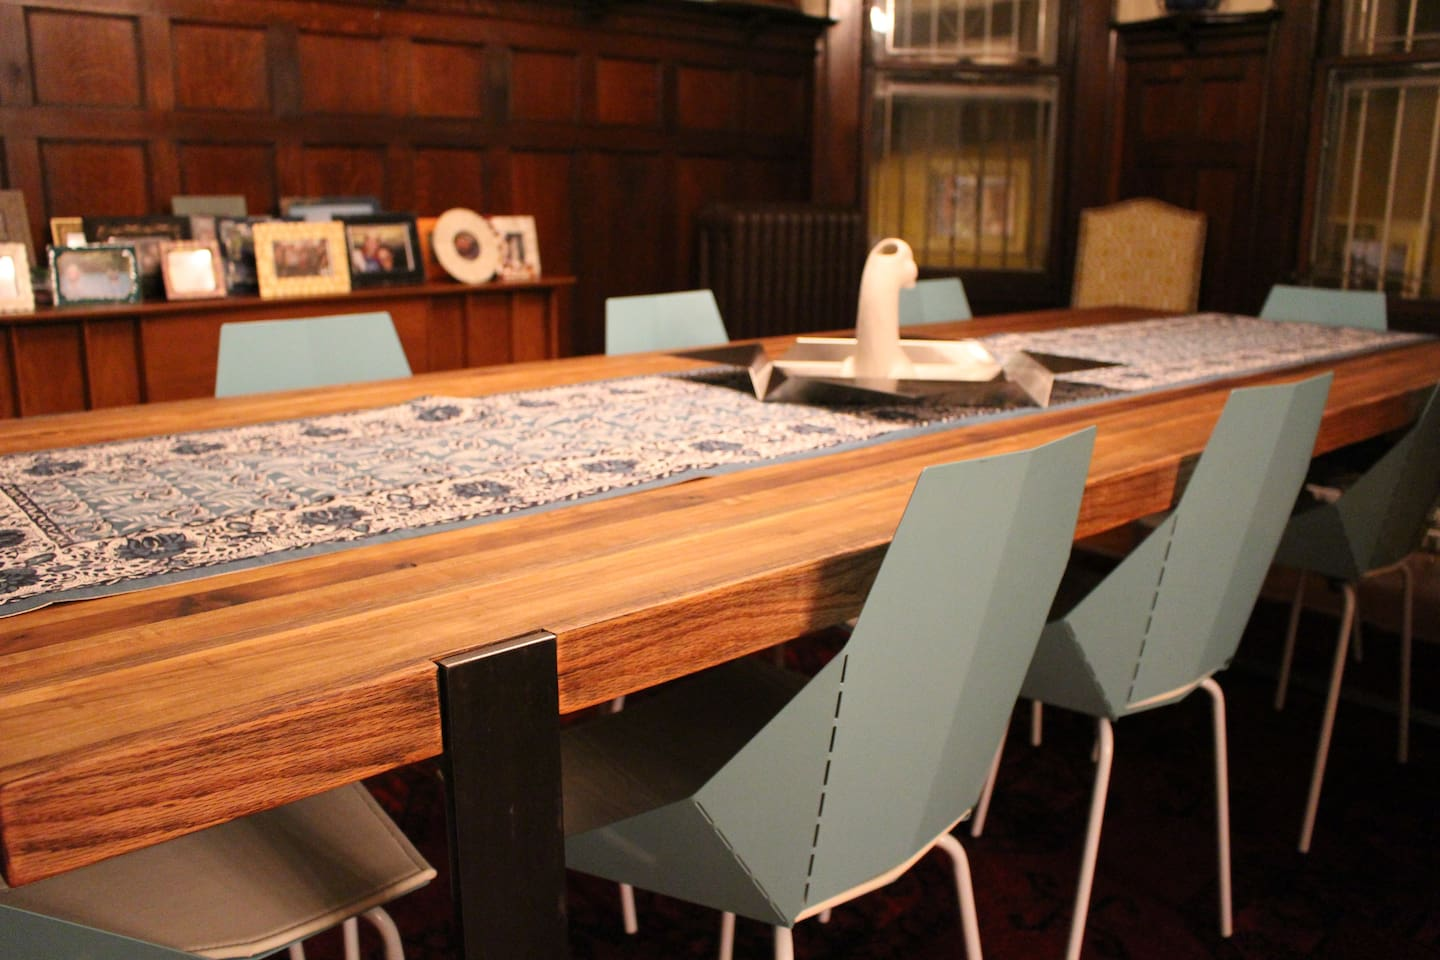 The dining room table seats 10. We furnished the house with modern & industrial pieces to offset the traditional built-in woodwork.